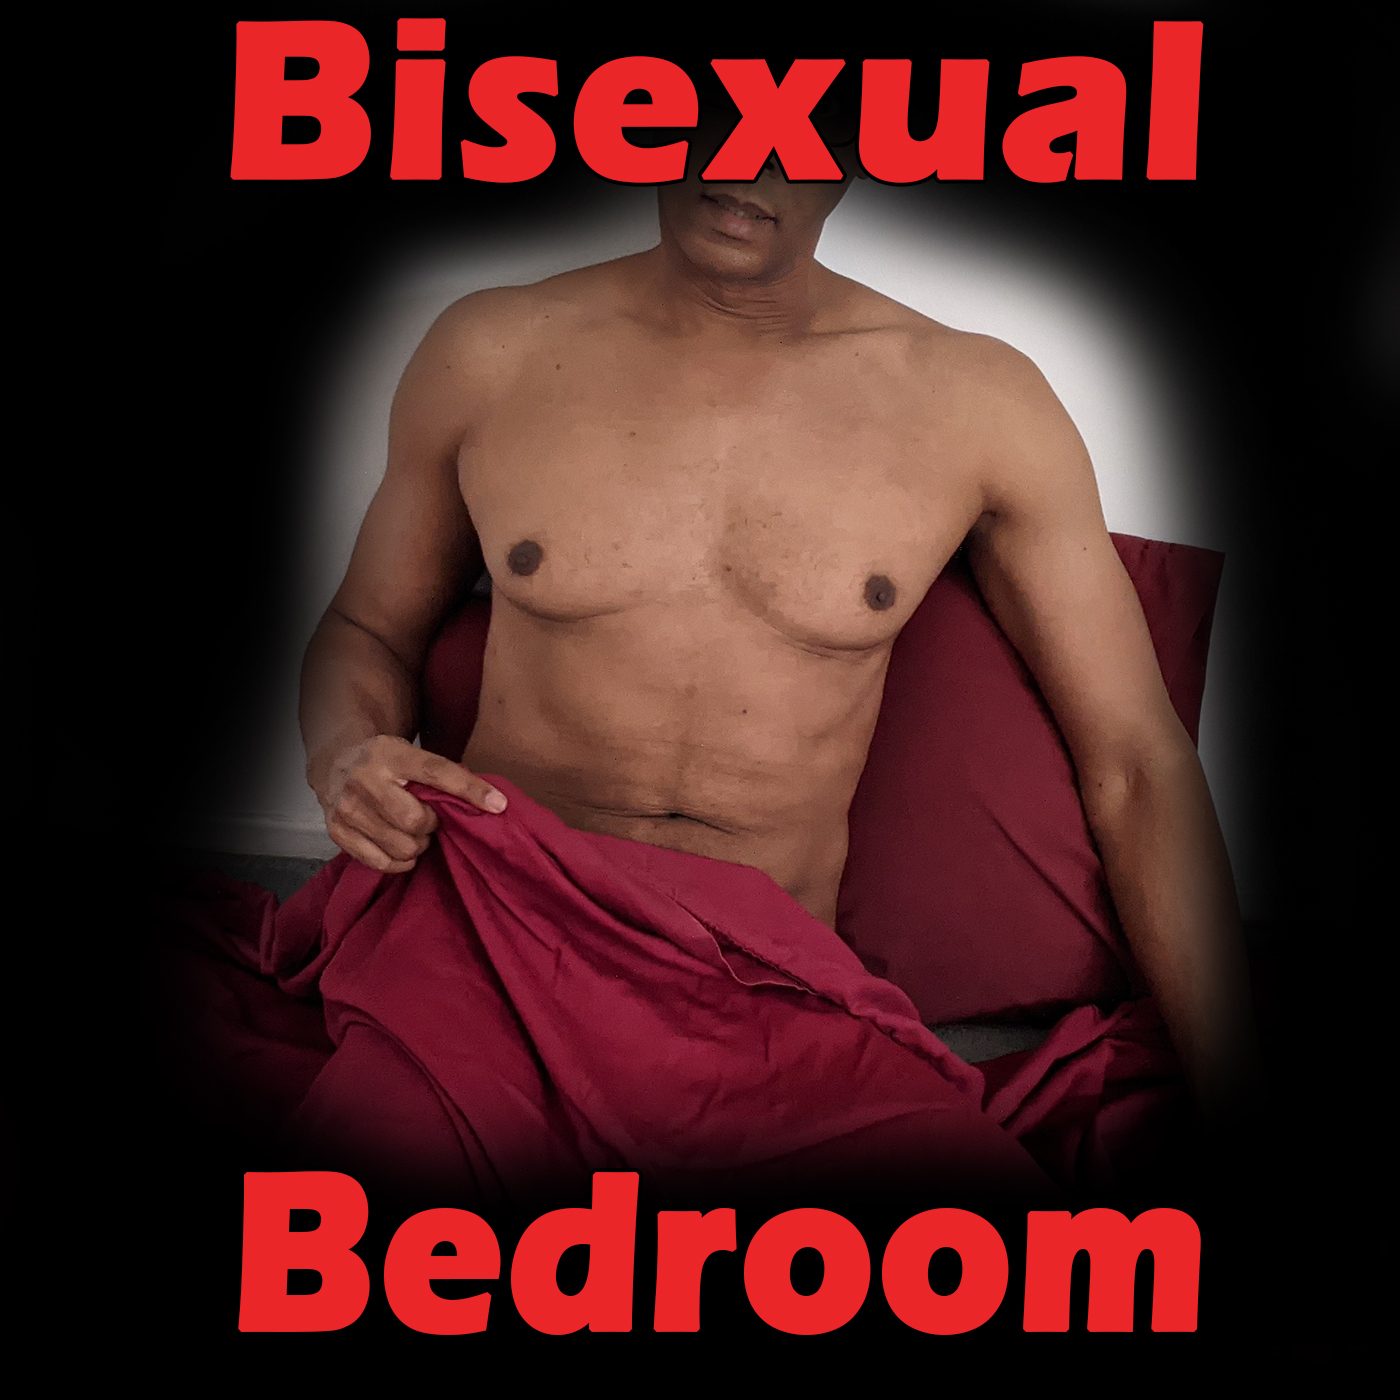 Bisexual Real Talk - Am I Gay and in Denial? - Viewer Email